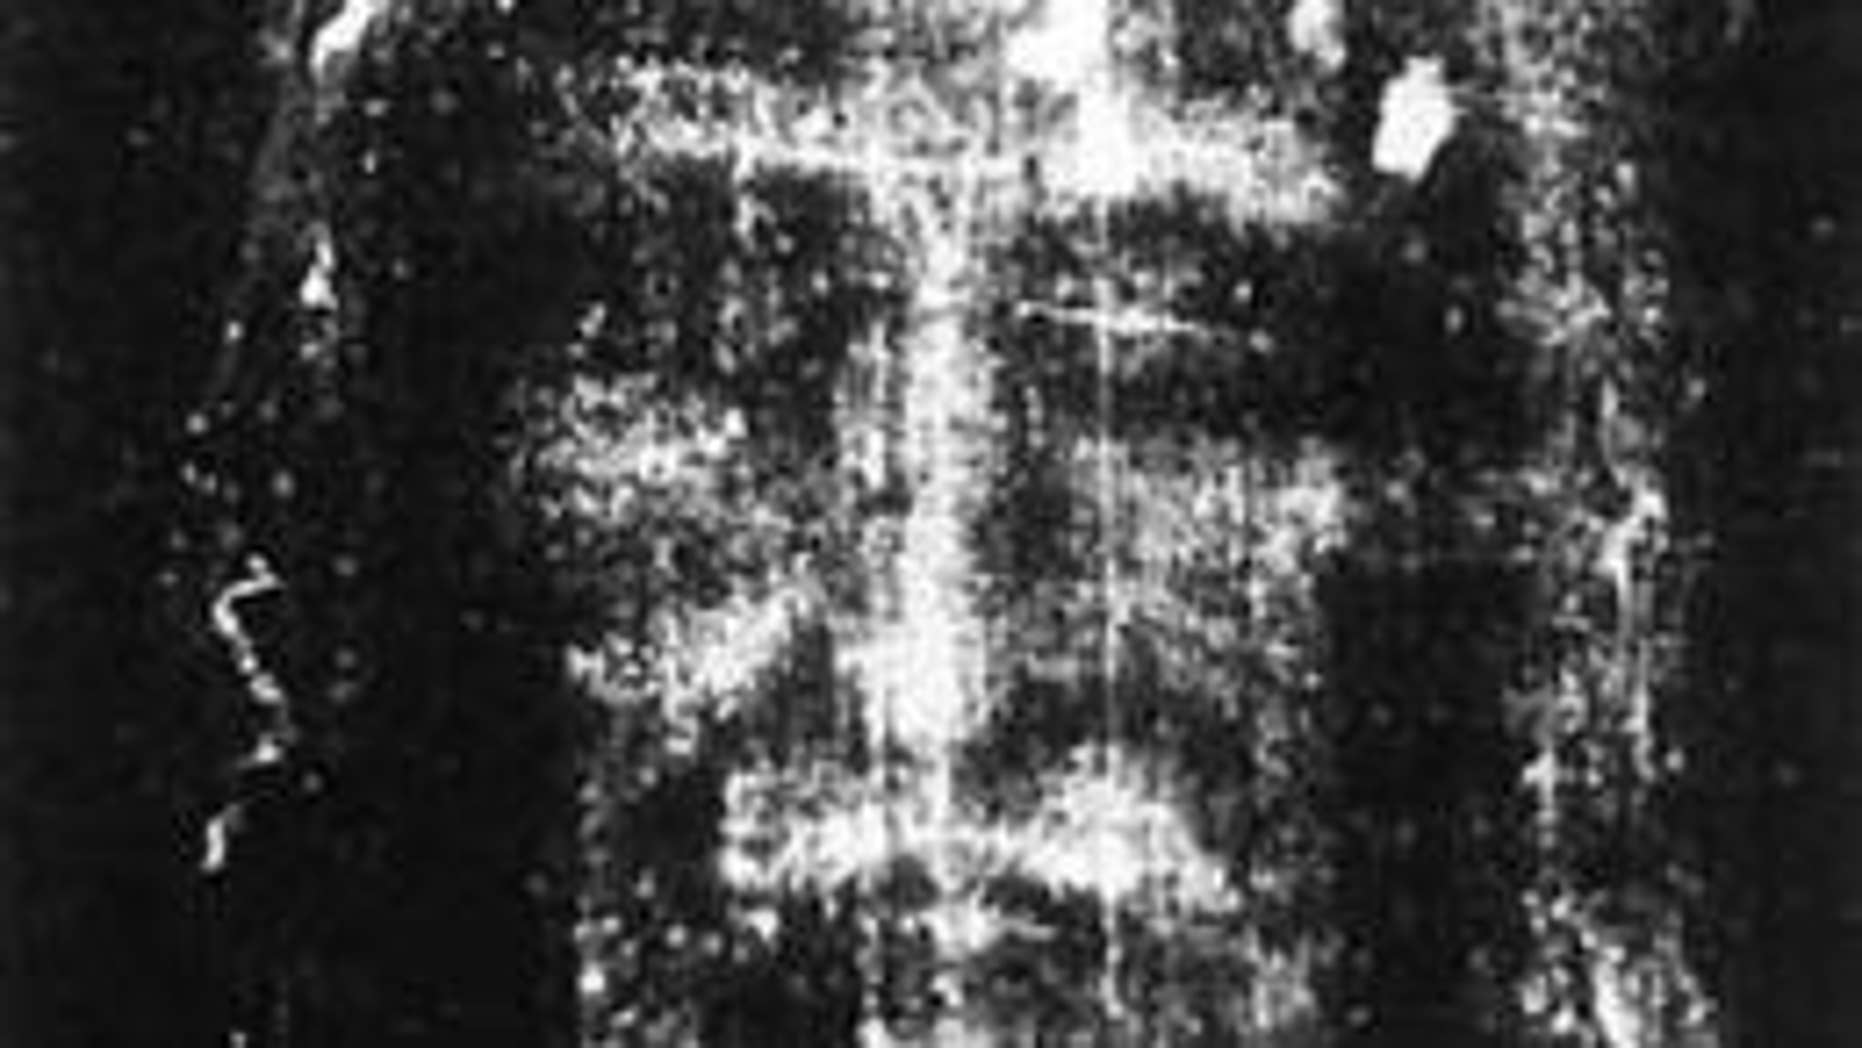 The Shroud of Turin, the reputed burial shroud of Jesus.